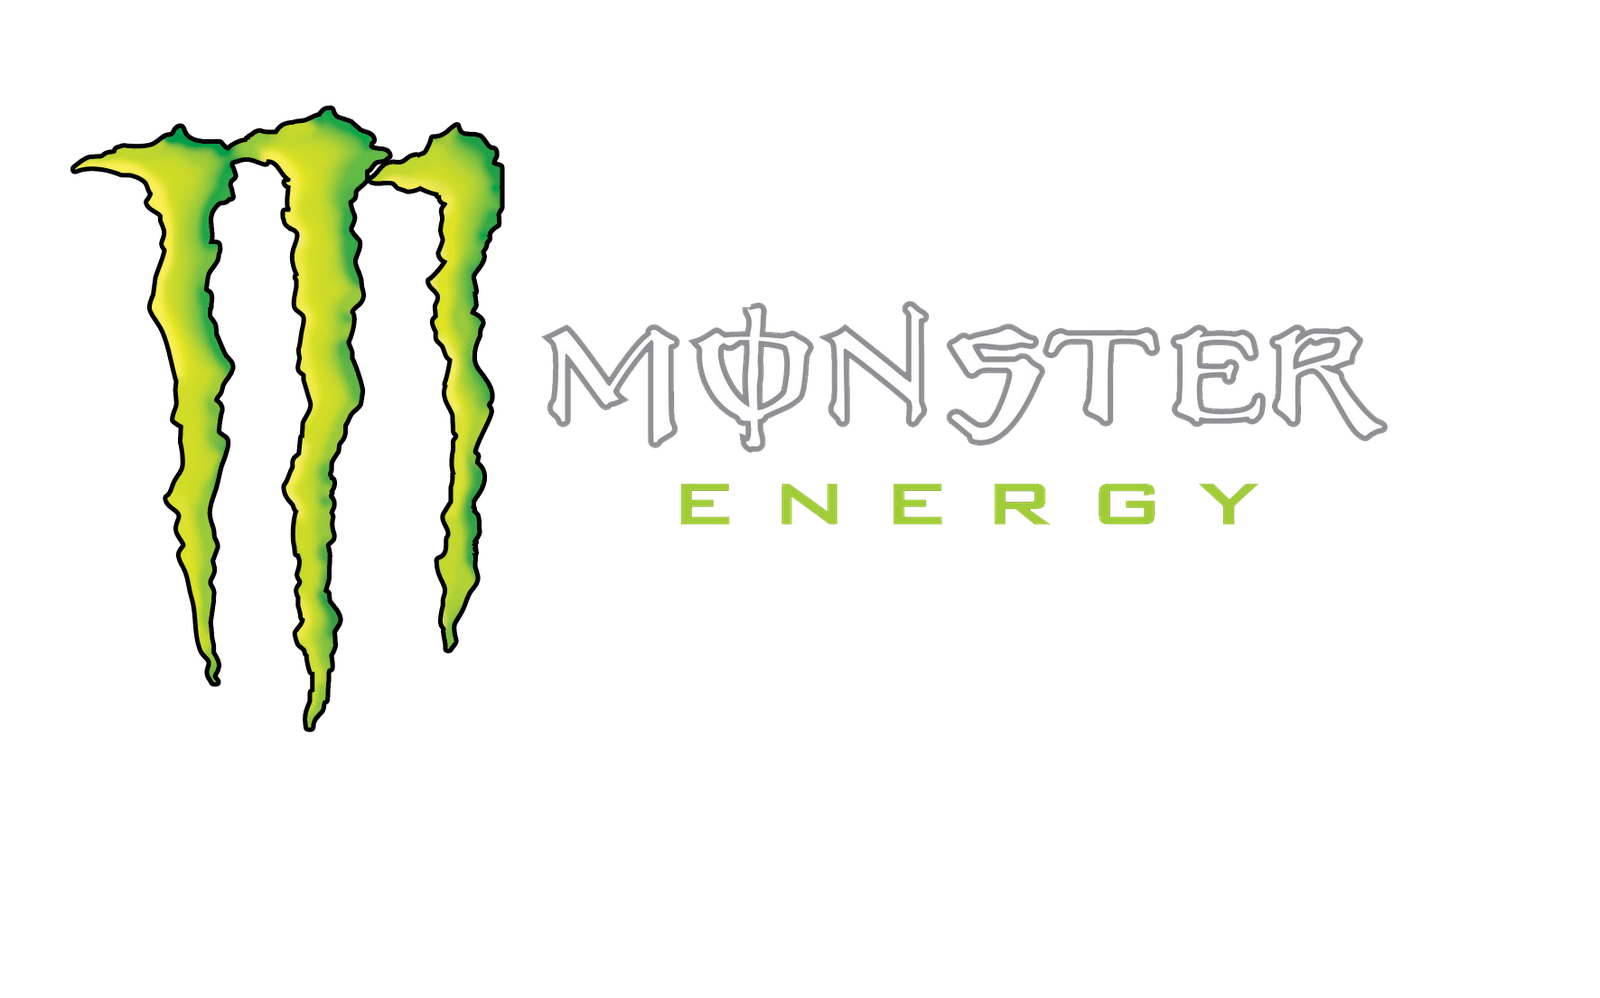 monster png logo wallpapers #3138